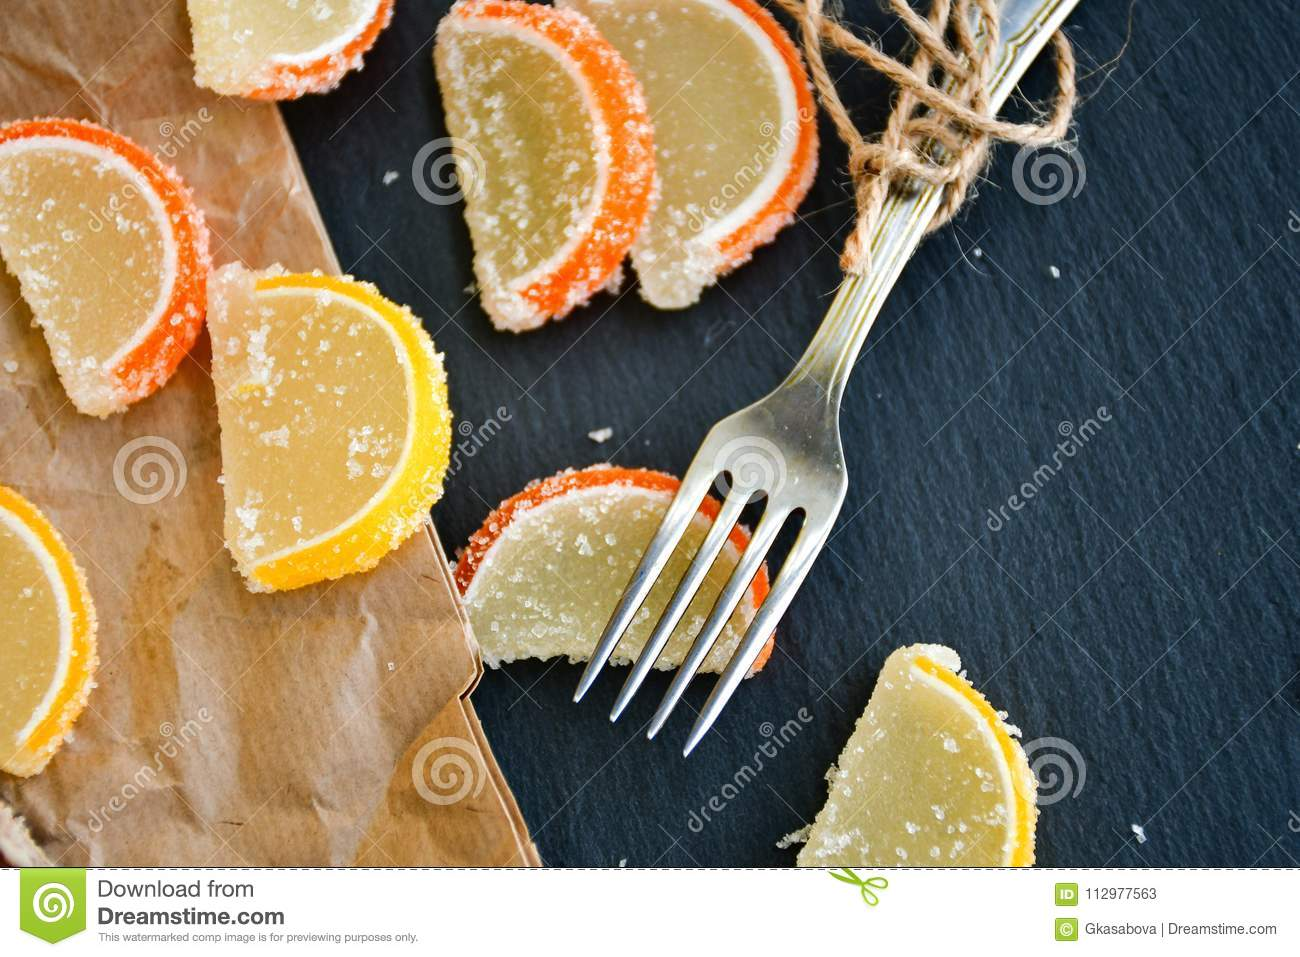 Lemon slices